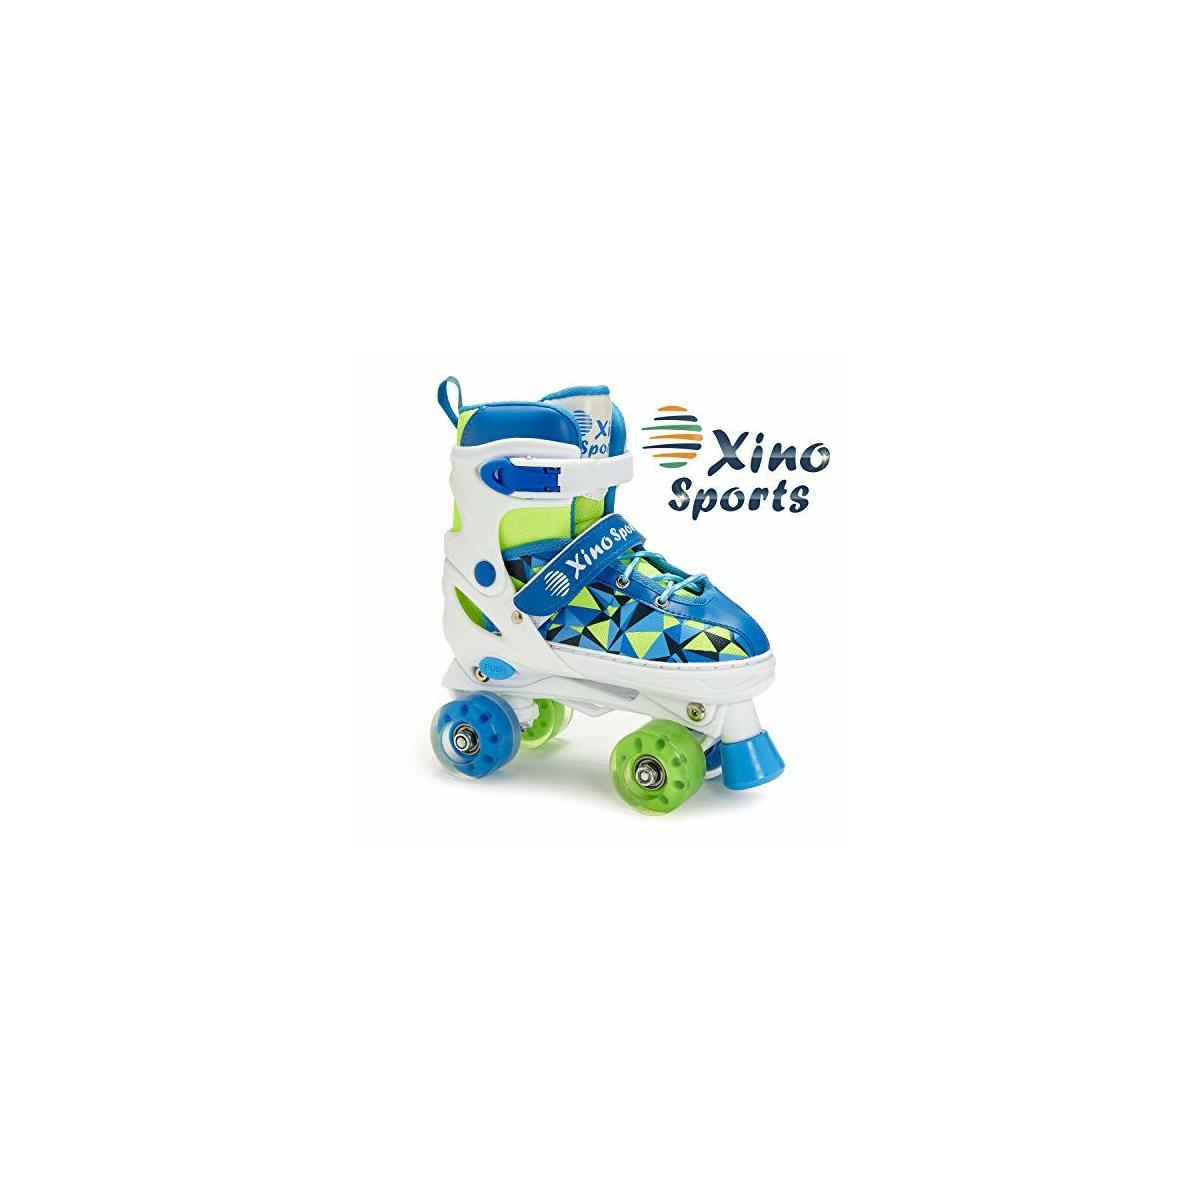 BLUE SKATES ONLY - Xino Sports Adjustable Roller Skates for Children - Featuring PU Wheels, Awesome-Looking, Safe and Durable Roller Skates, Perfect for Boys and Girls!